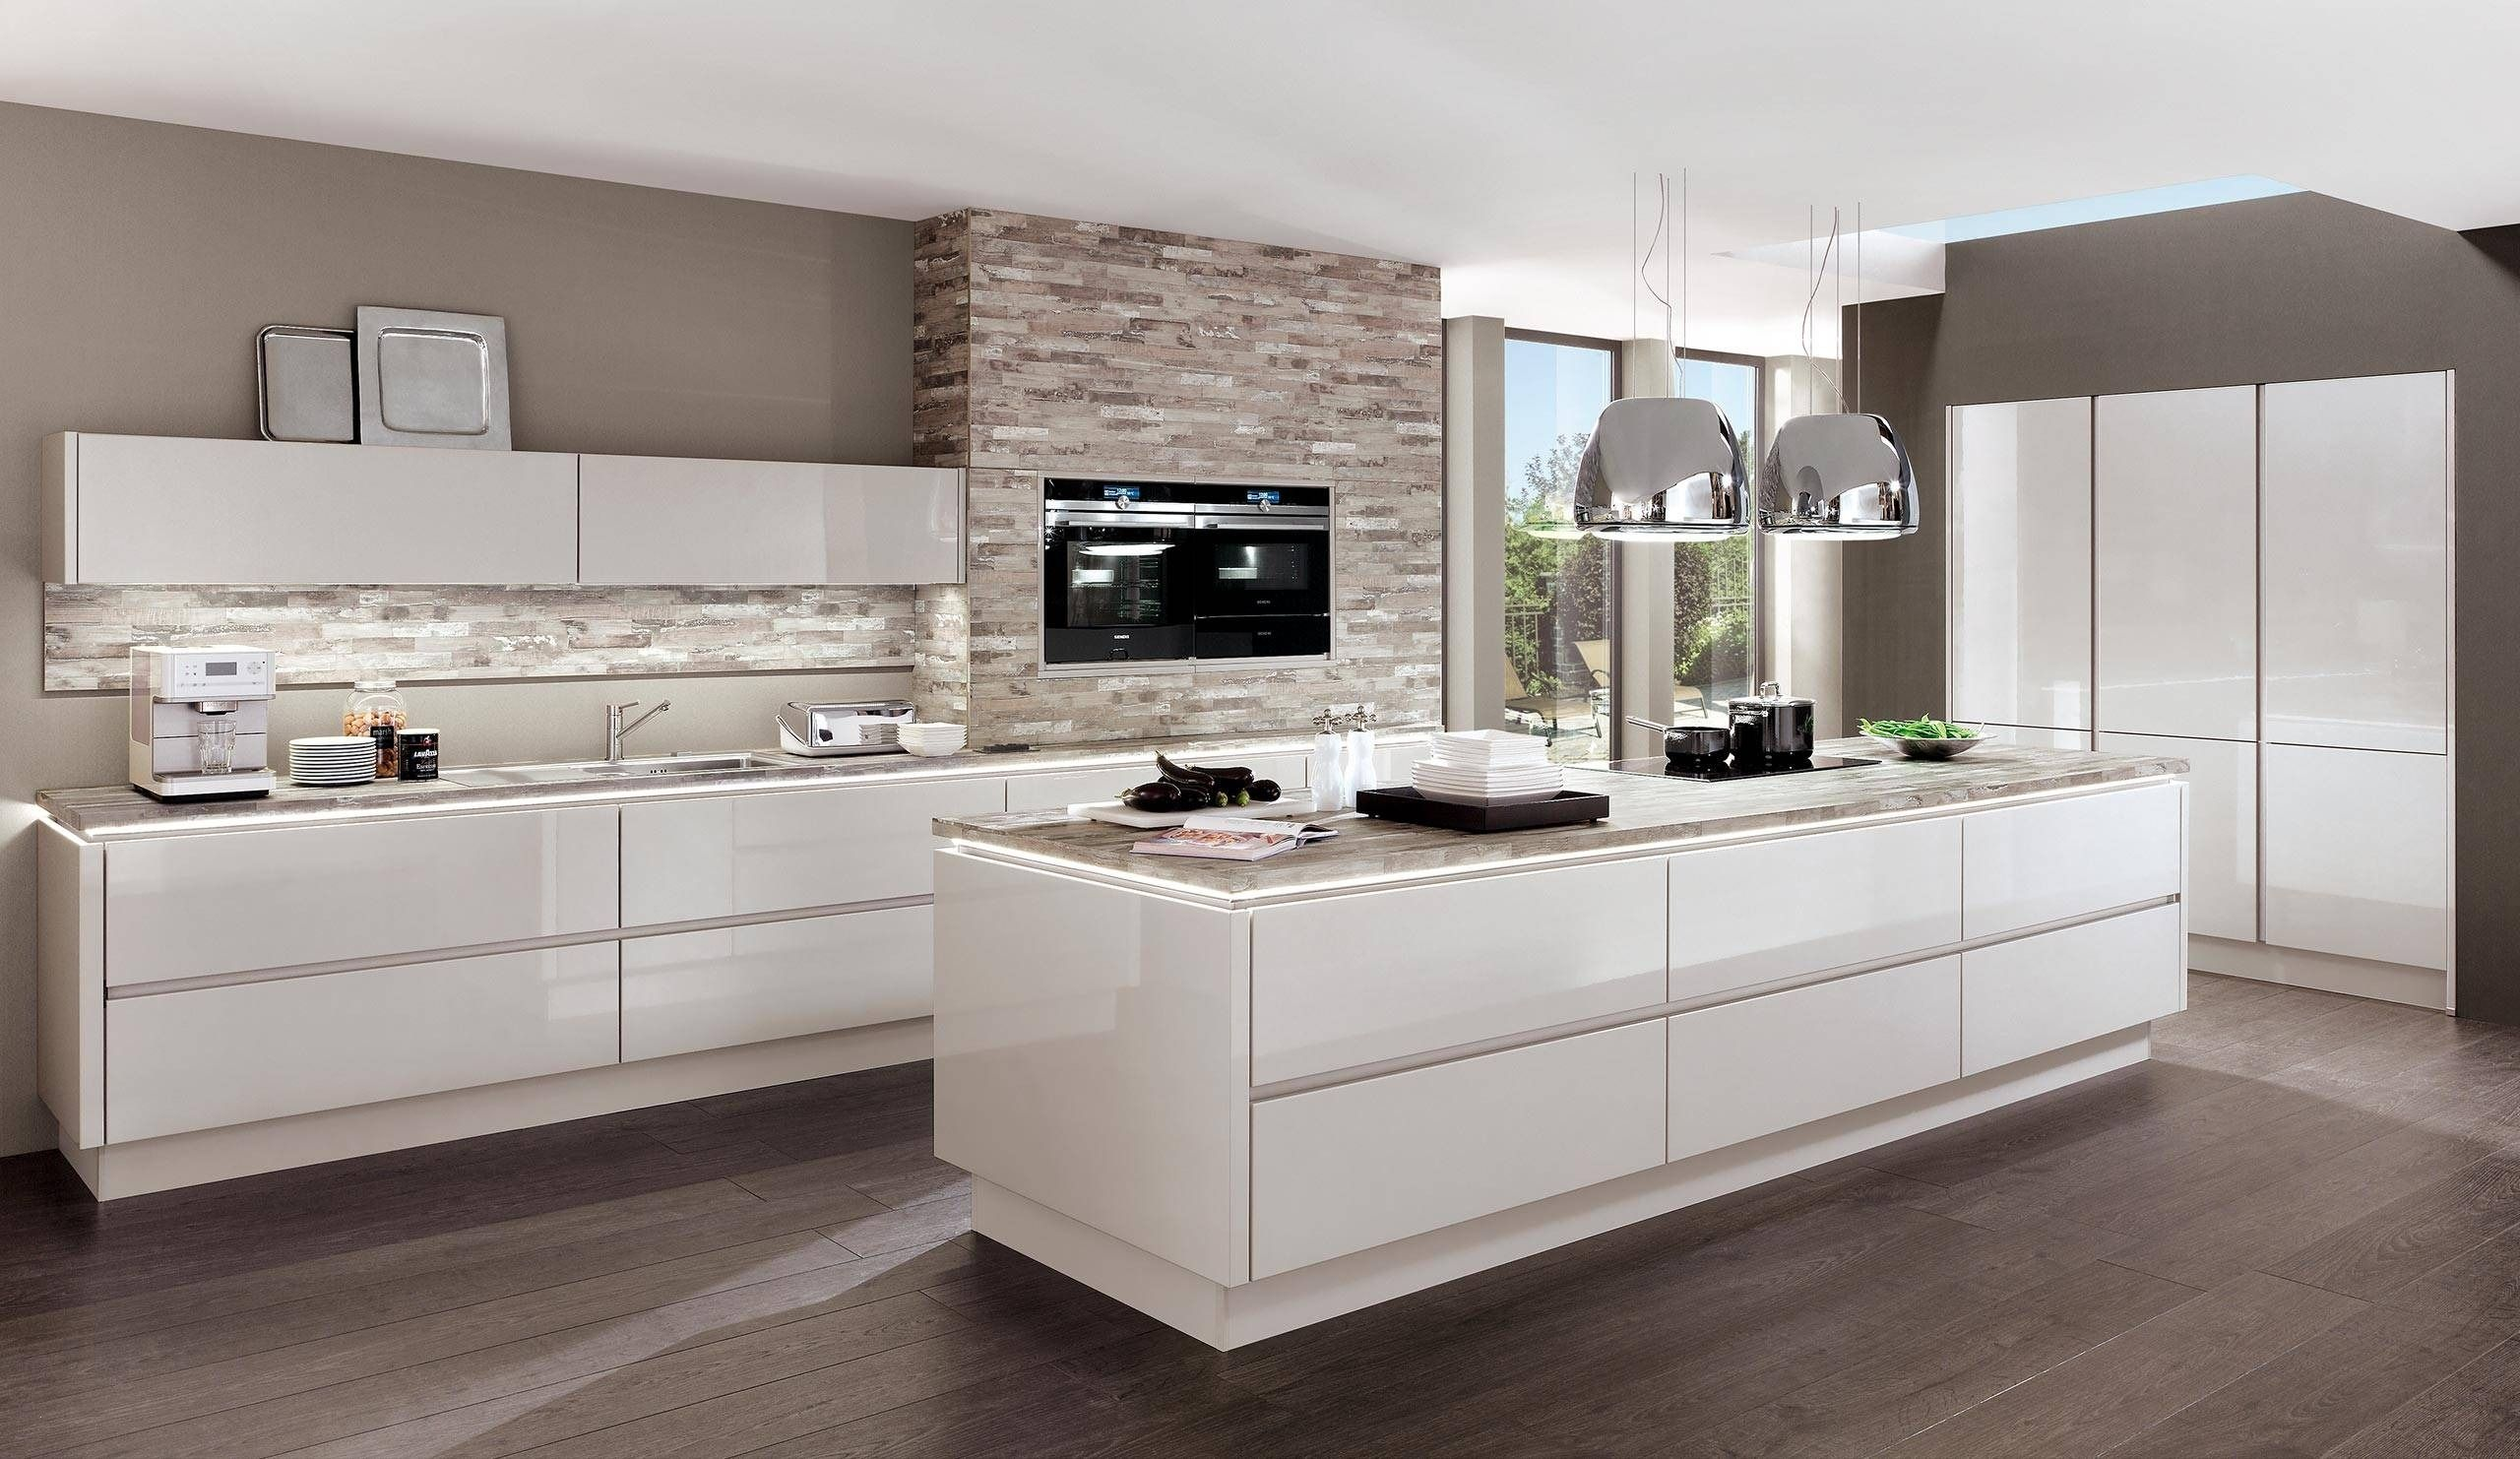 27 Genial Xxl Lutz Kuche Modern Kitchen Design Nobilia Kitchen